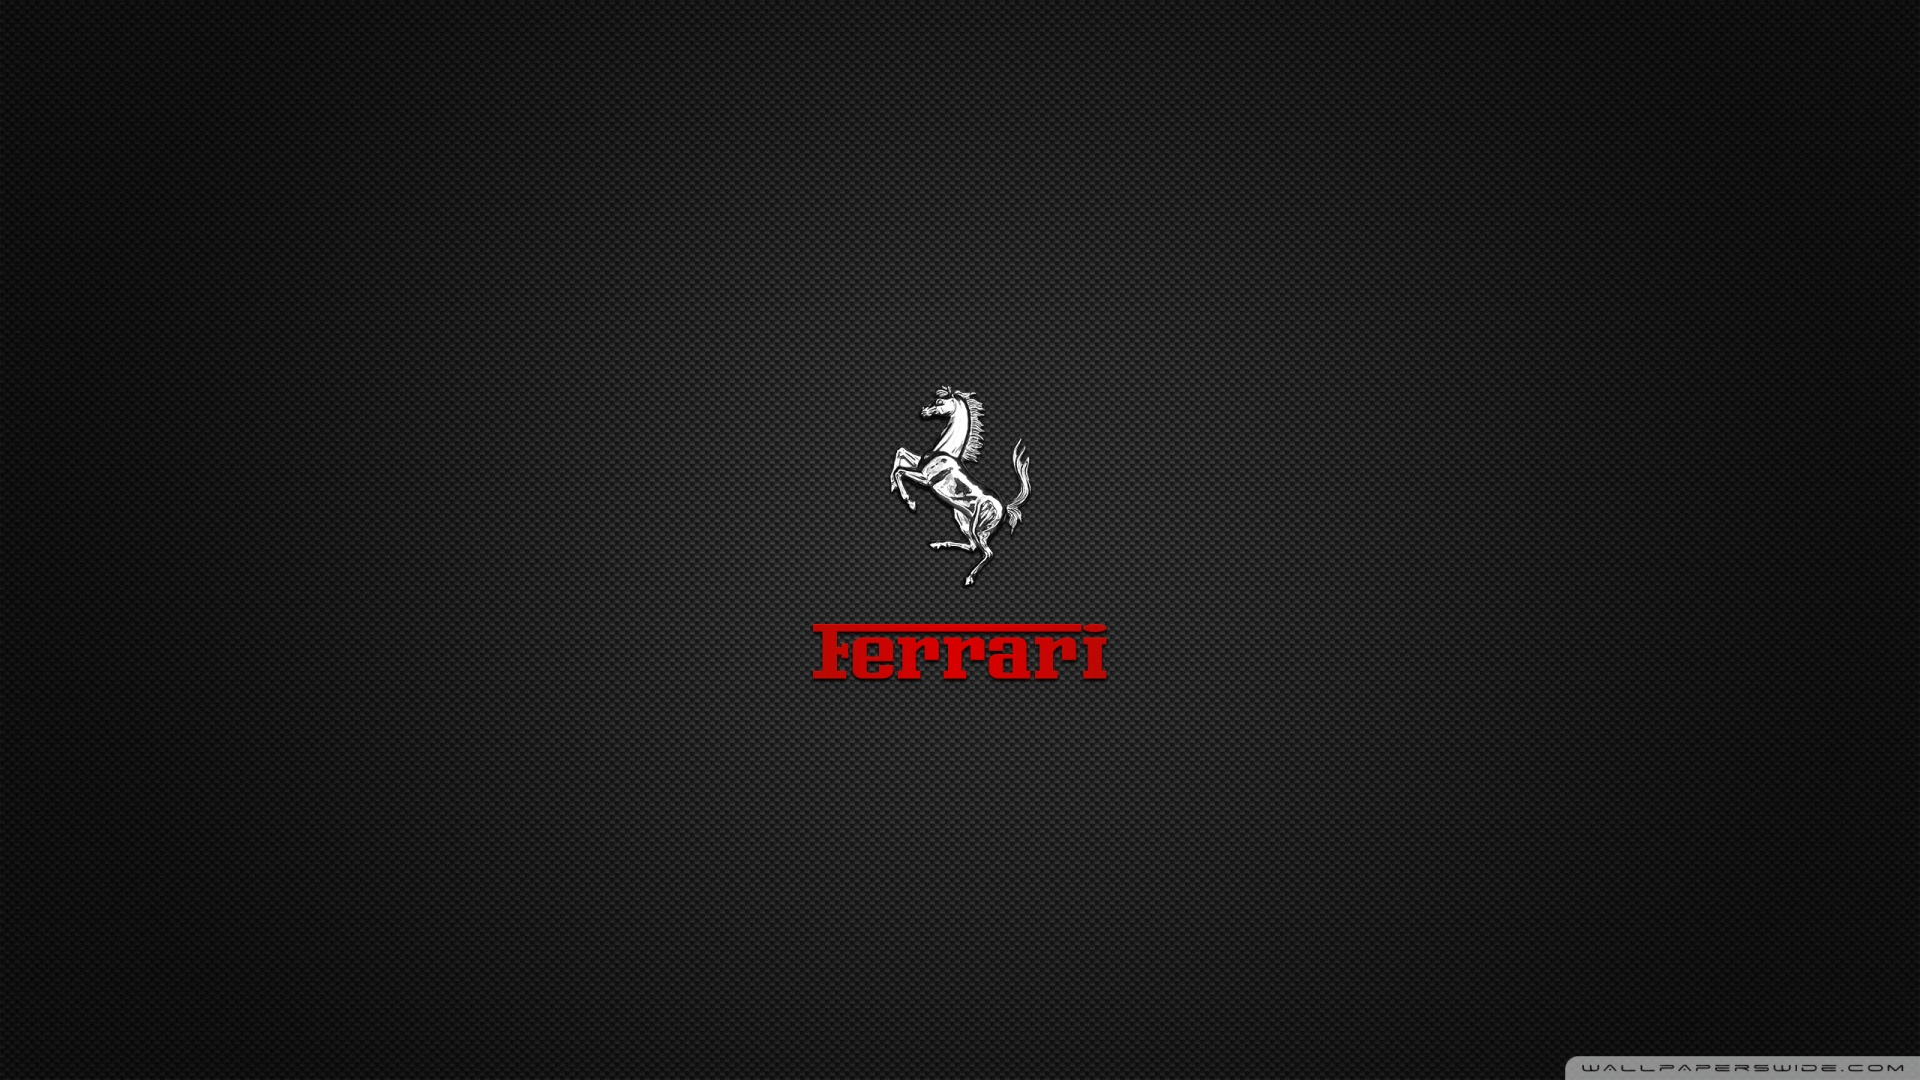 Ferrari Logo #318571 | Full HD Widescreen wallpapers for desktop